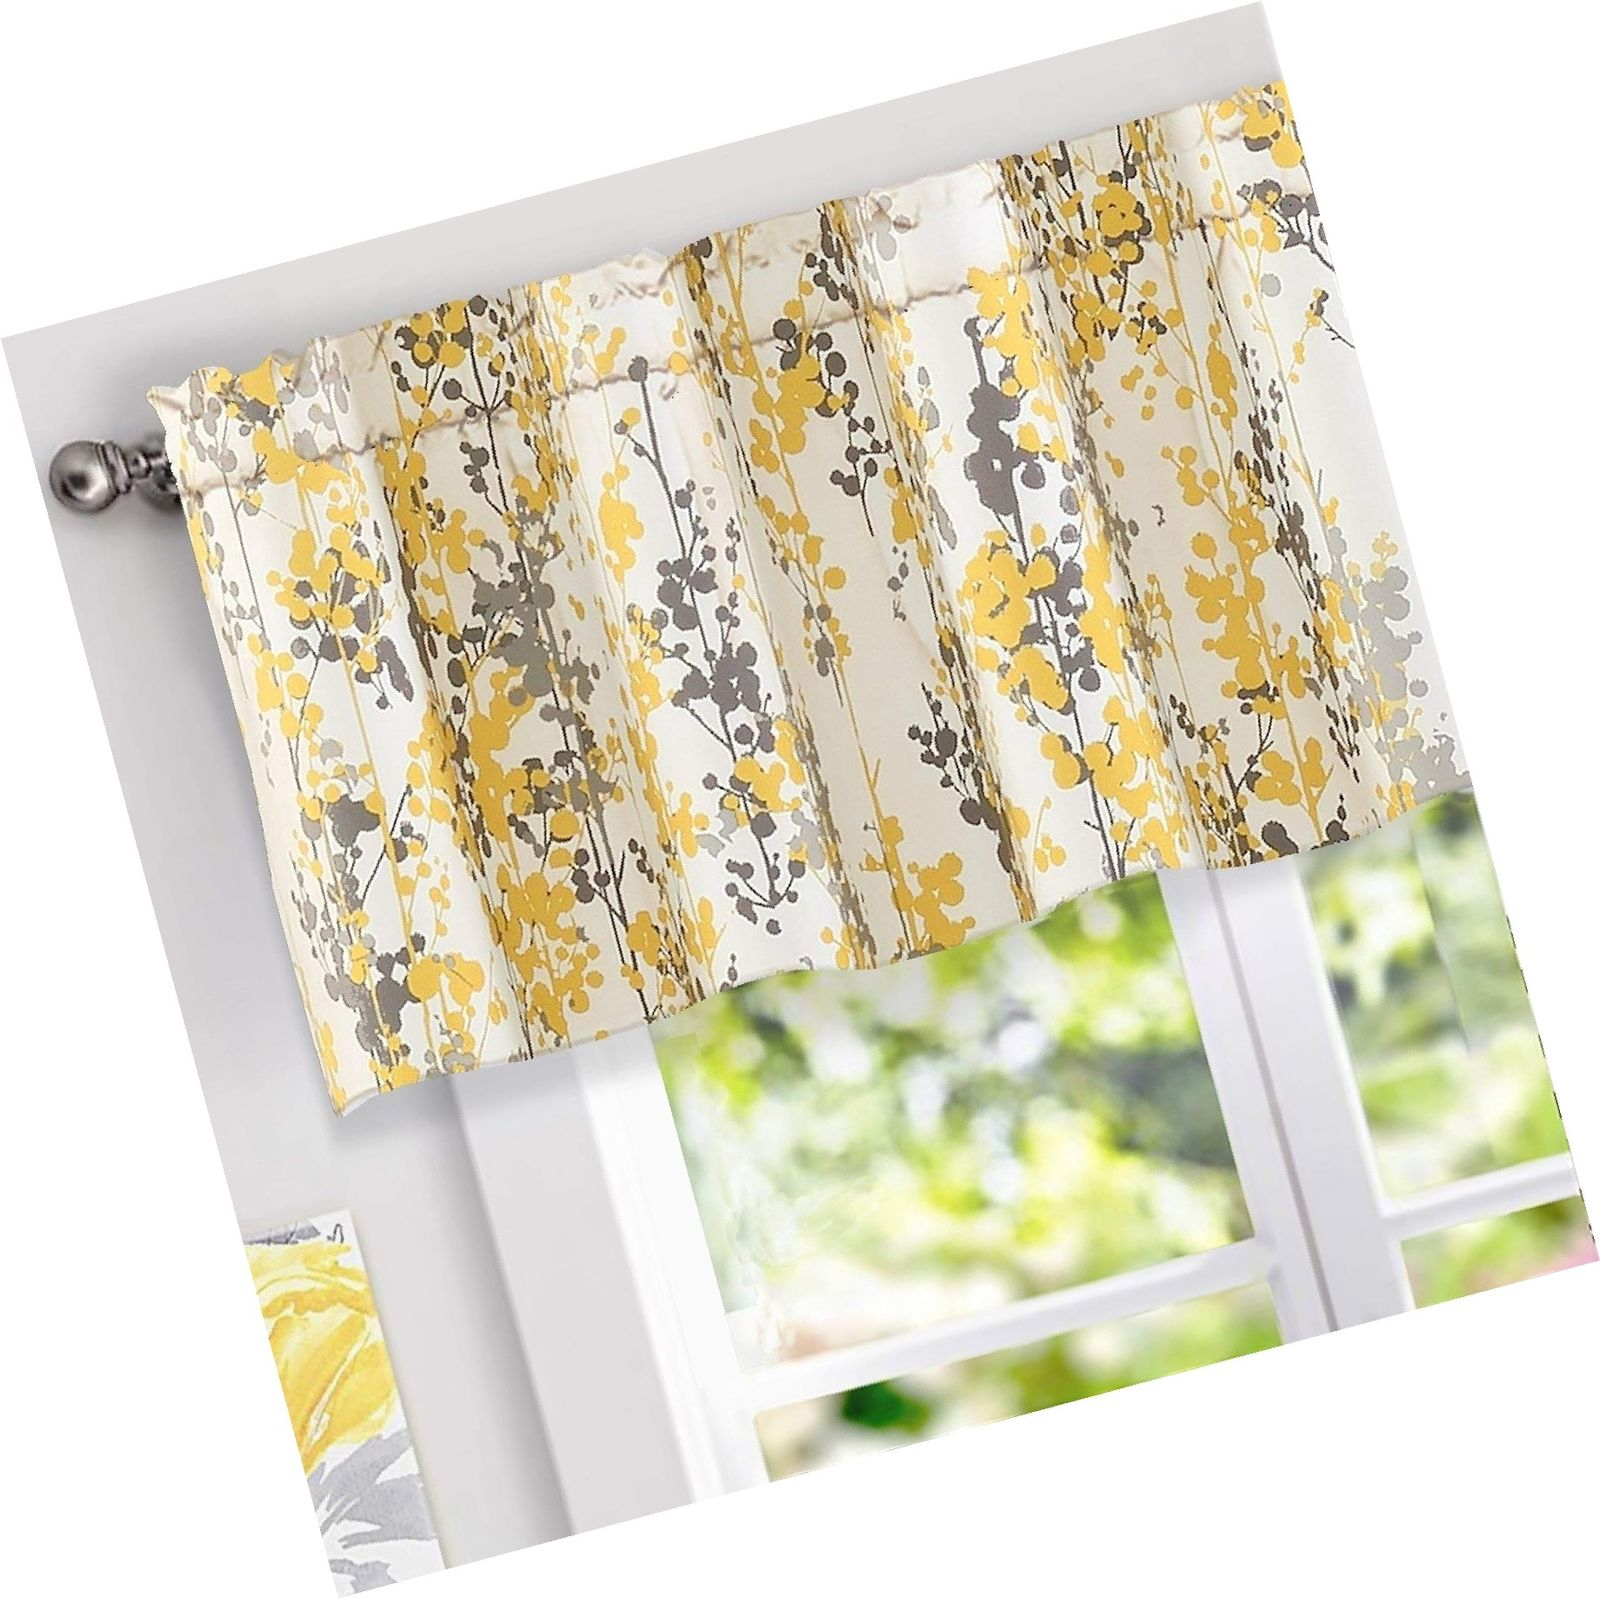 Blinds & Shades In Floral Blossom Ink Painting Thermal Room Darkening Kitchen Tier Pairs (View 18 of 20)